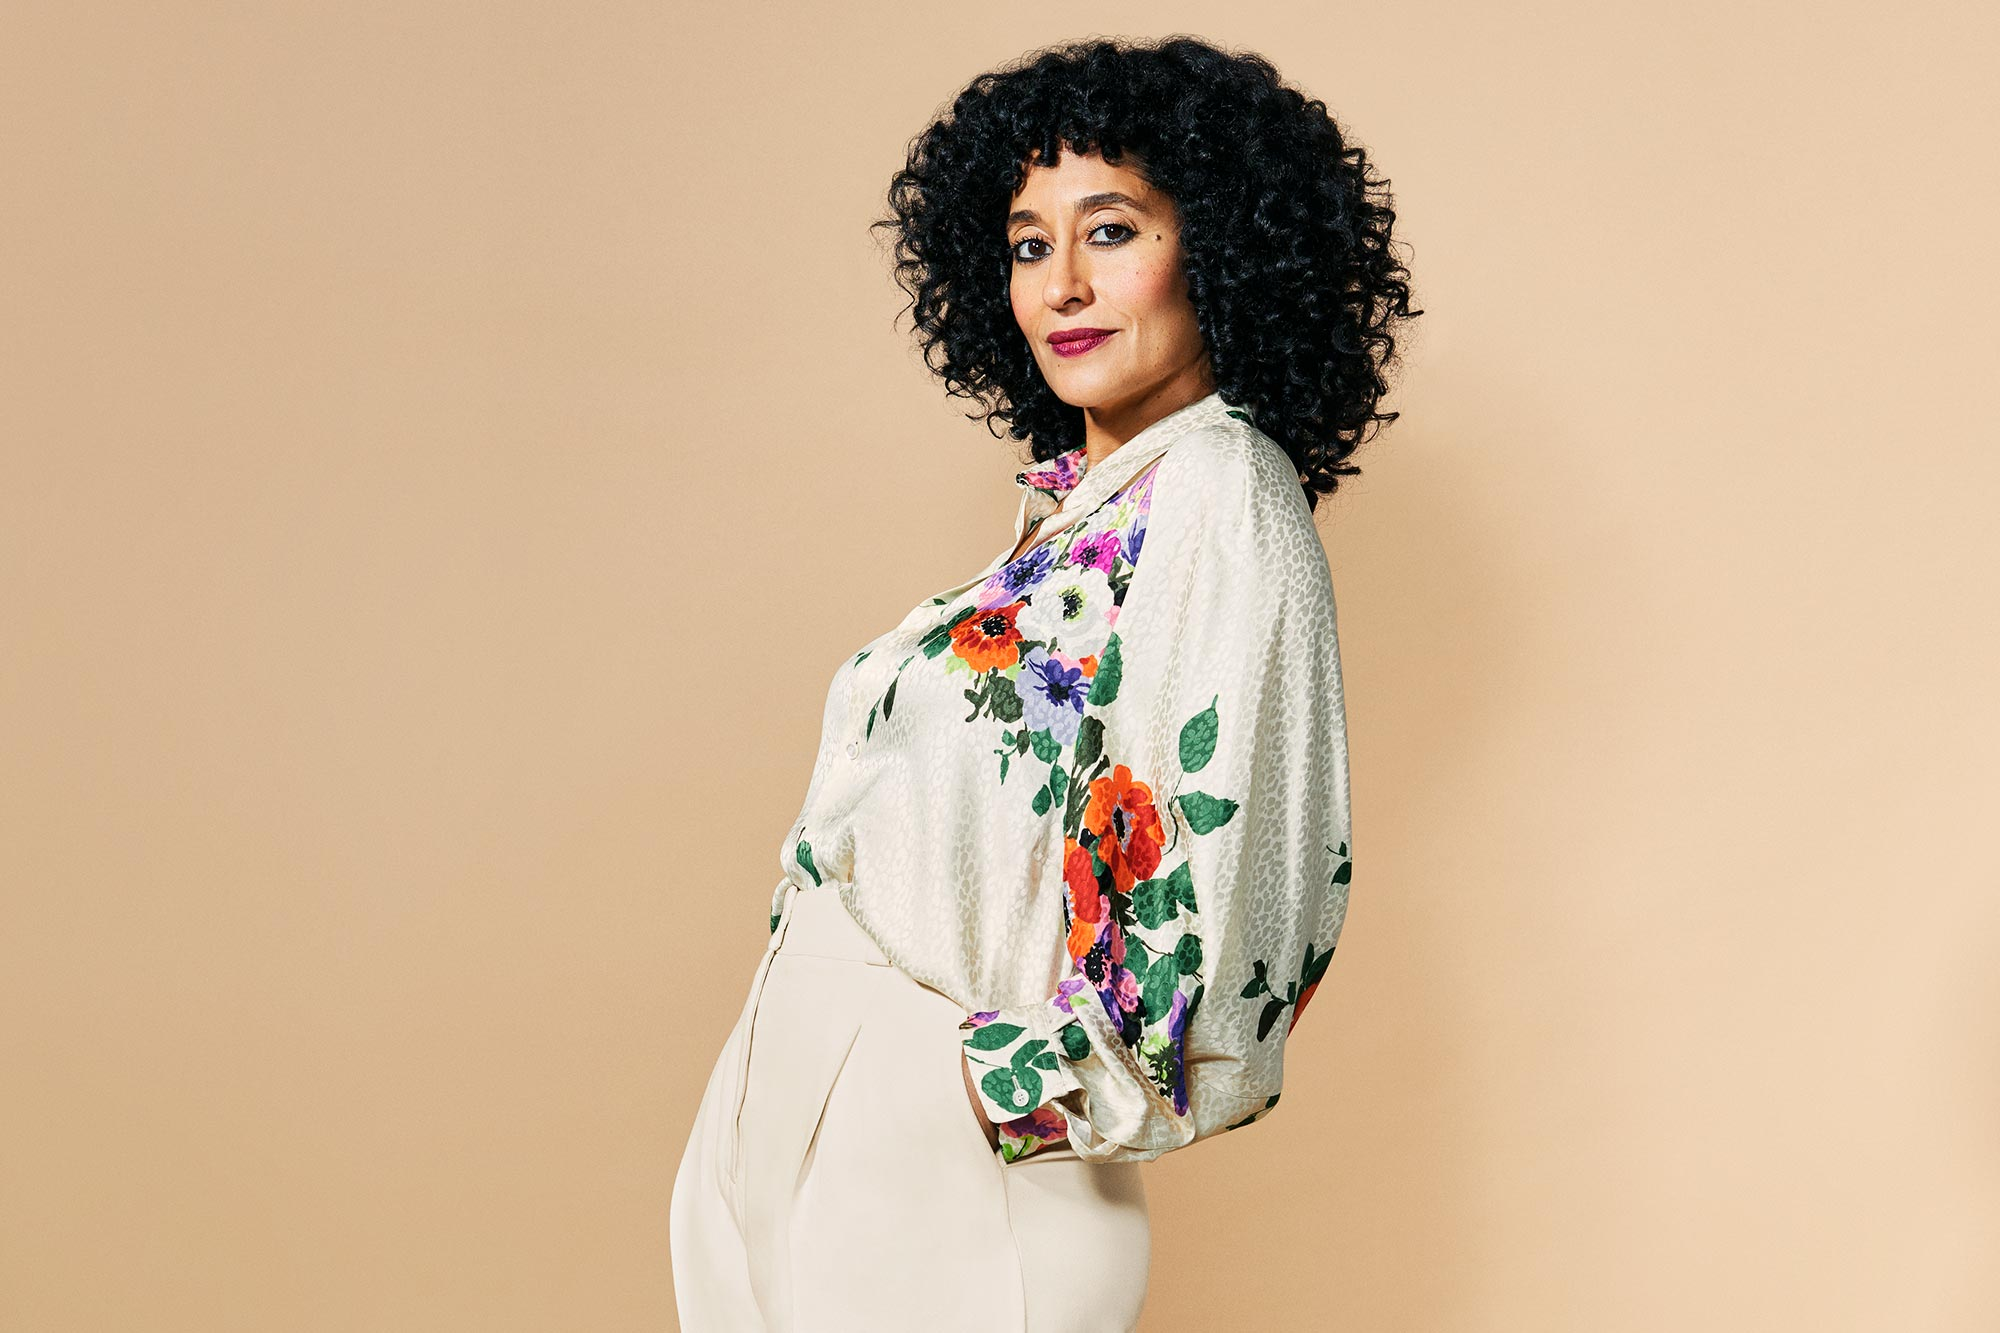 Tracee Ellis Ross Celeb Must List